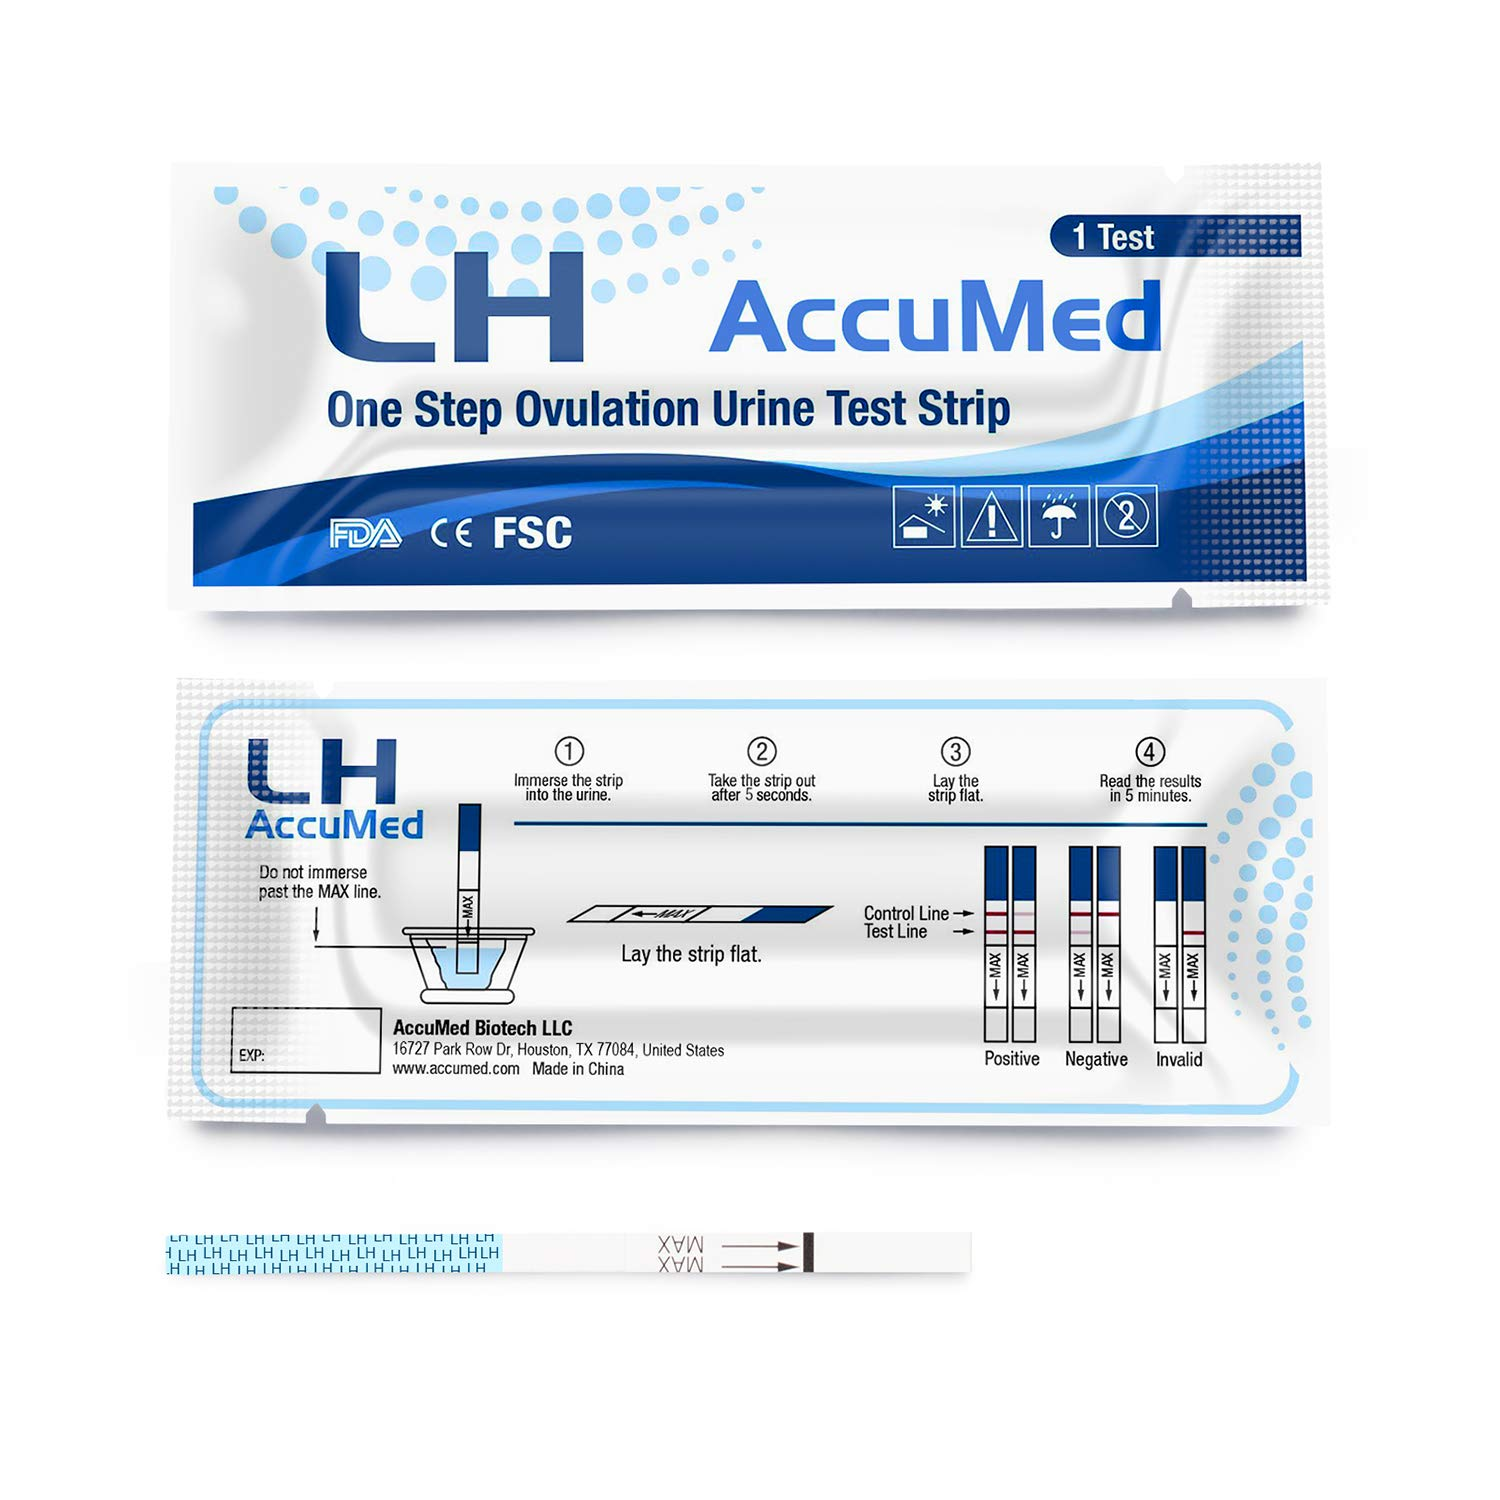 AccuMed Ovulation (LH) Test Strips Kit, Clear and Accurate Results, 99% Accurate, 100 Count by AccuMed